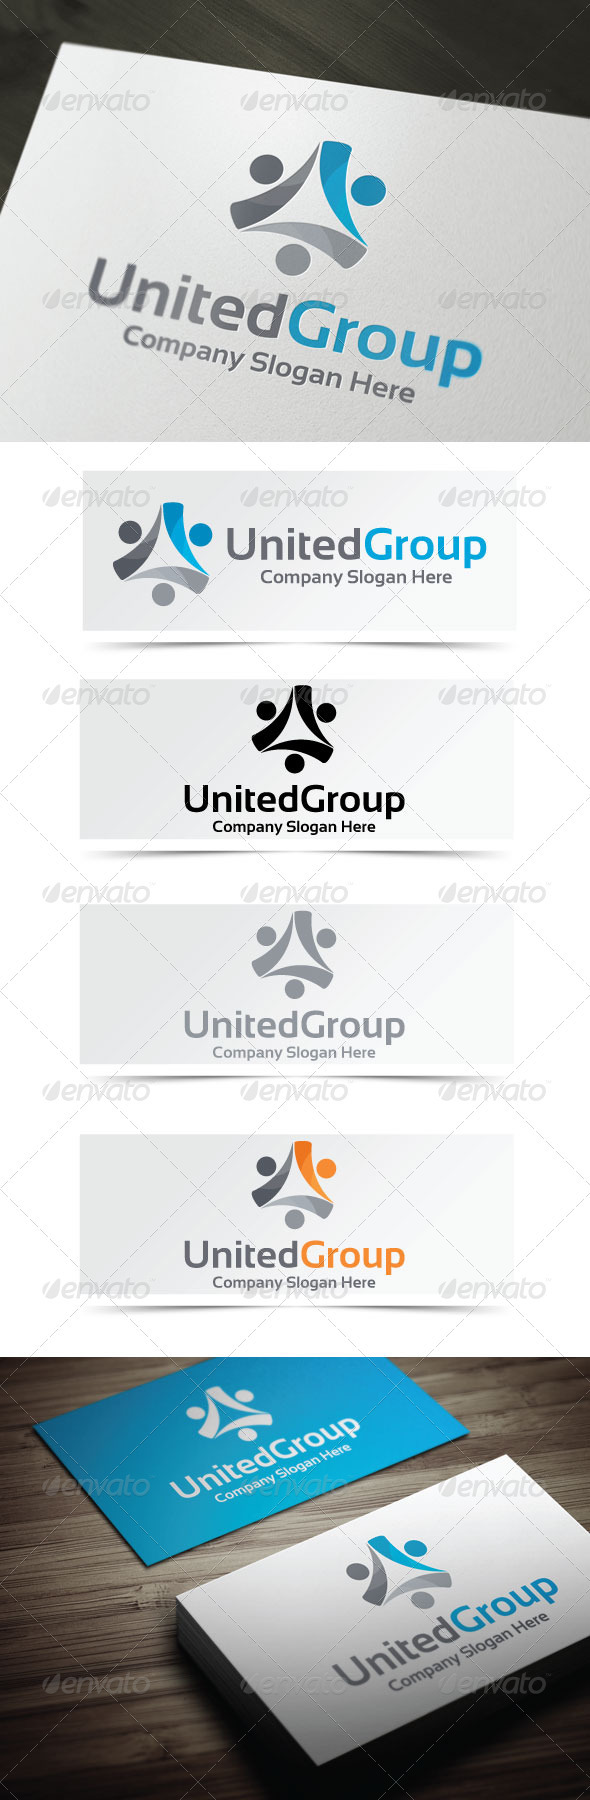 GraphicRiver United Group 3946887